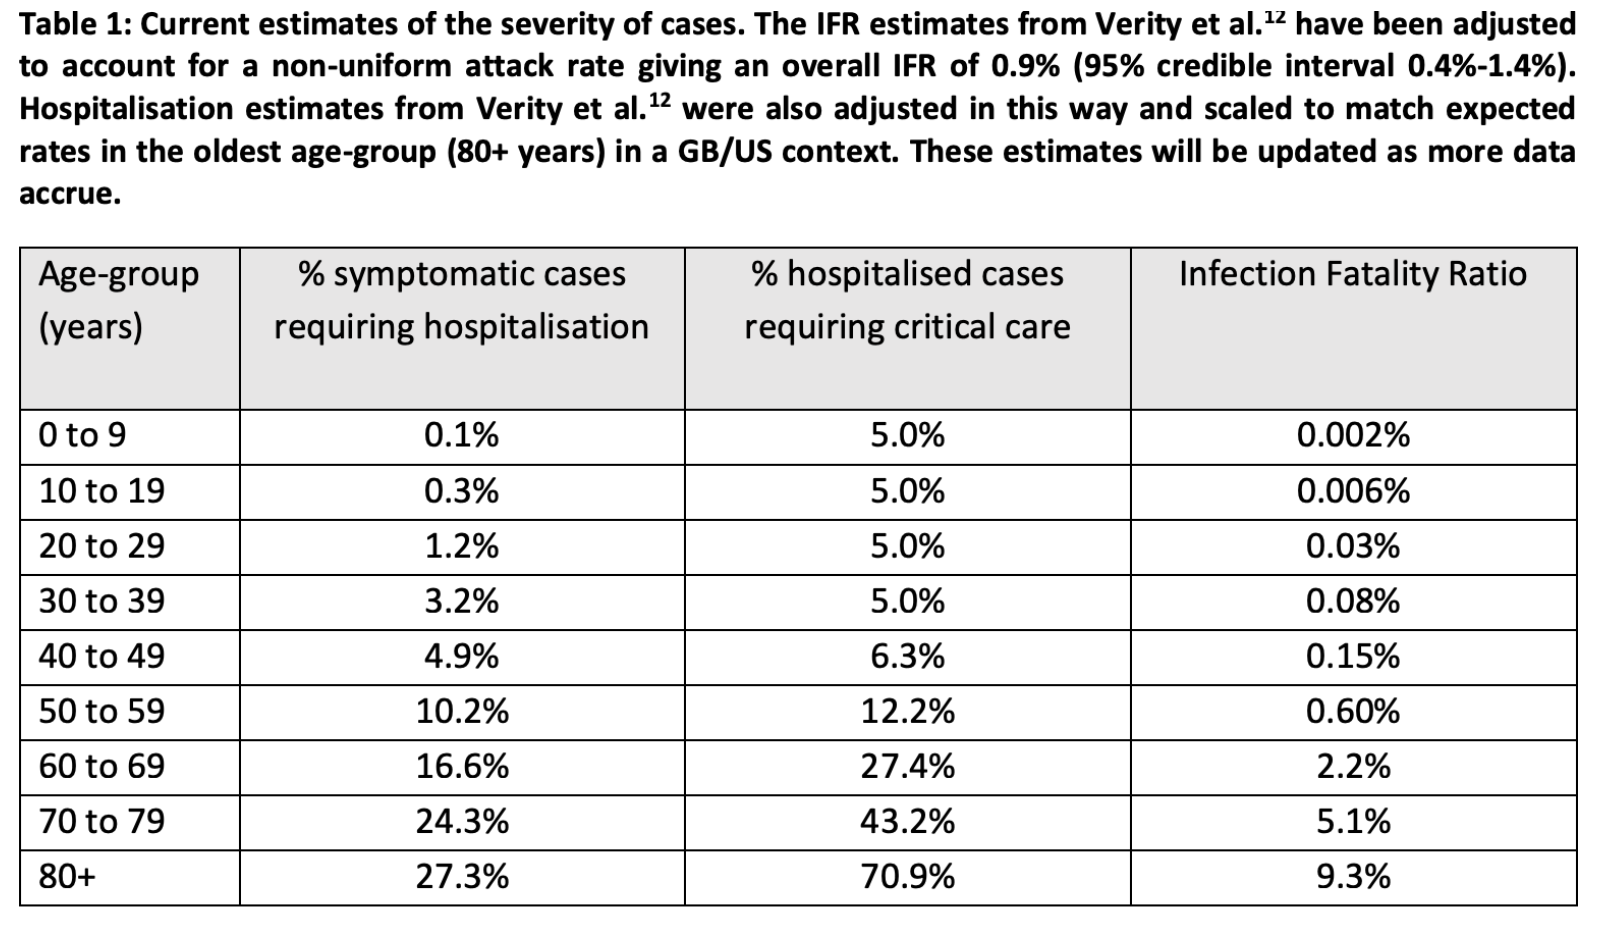 Impact of non-pharmaceutical interventions (NPIs) to reduce COVID19 mortality and healthcare demand